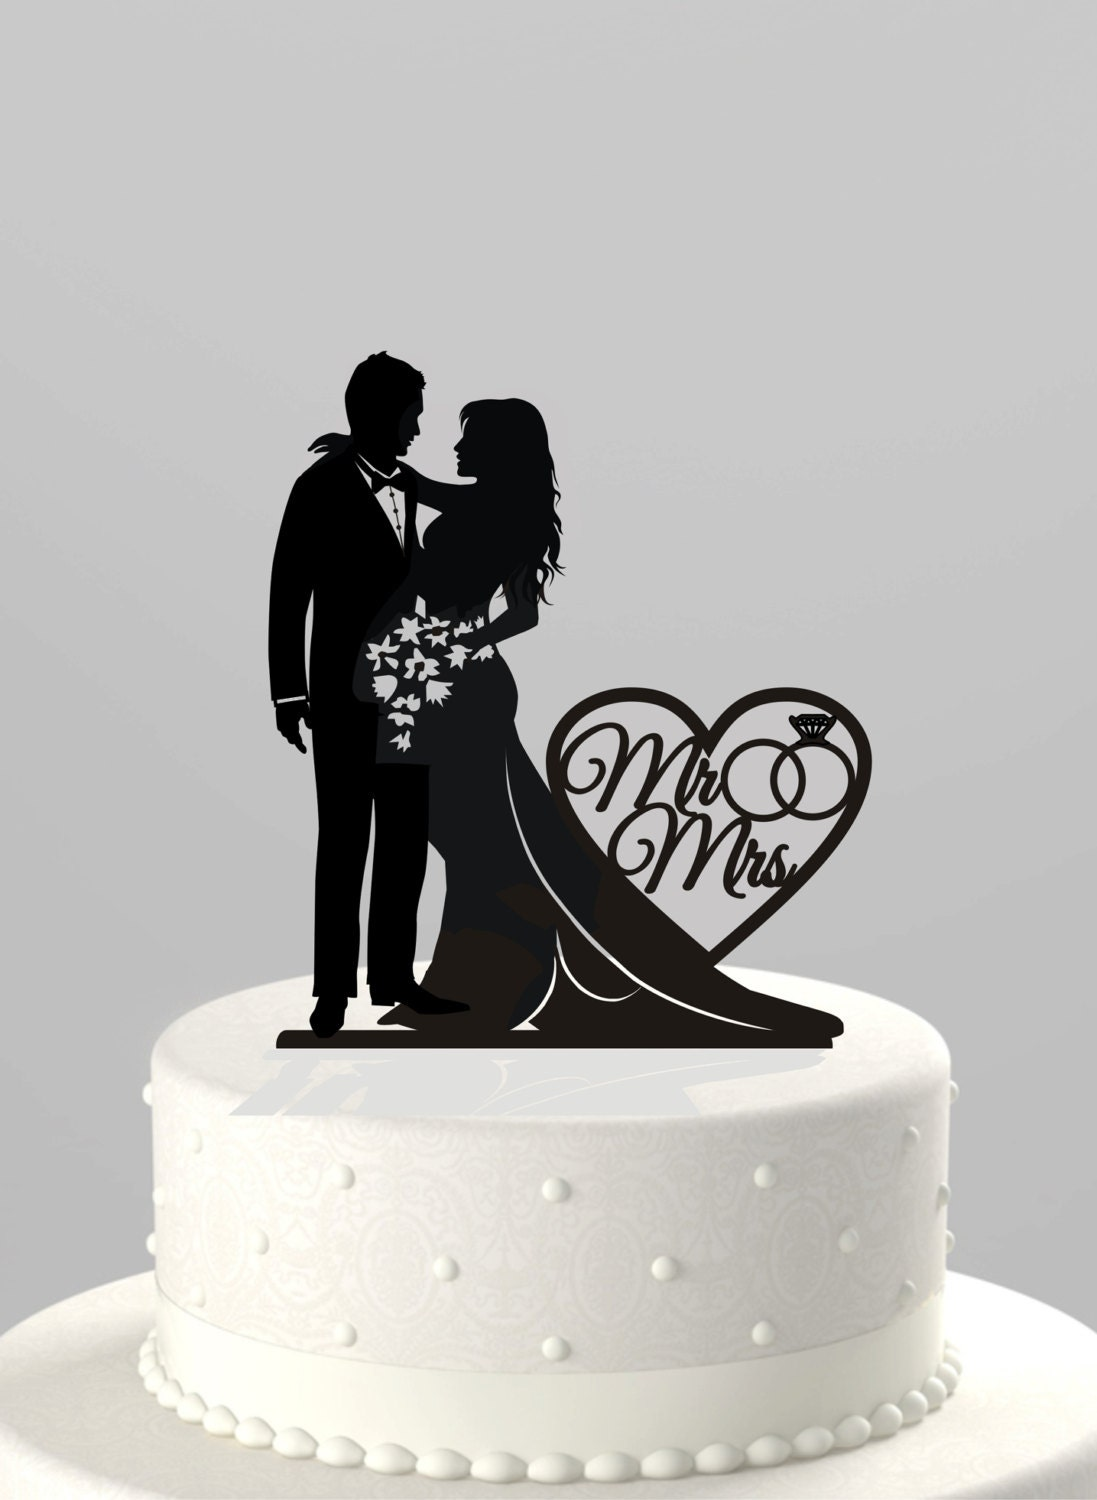 Wedding Cake Topper Silhouette Bride and Groom with Mr